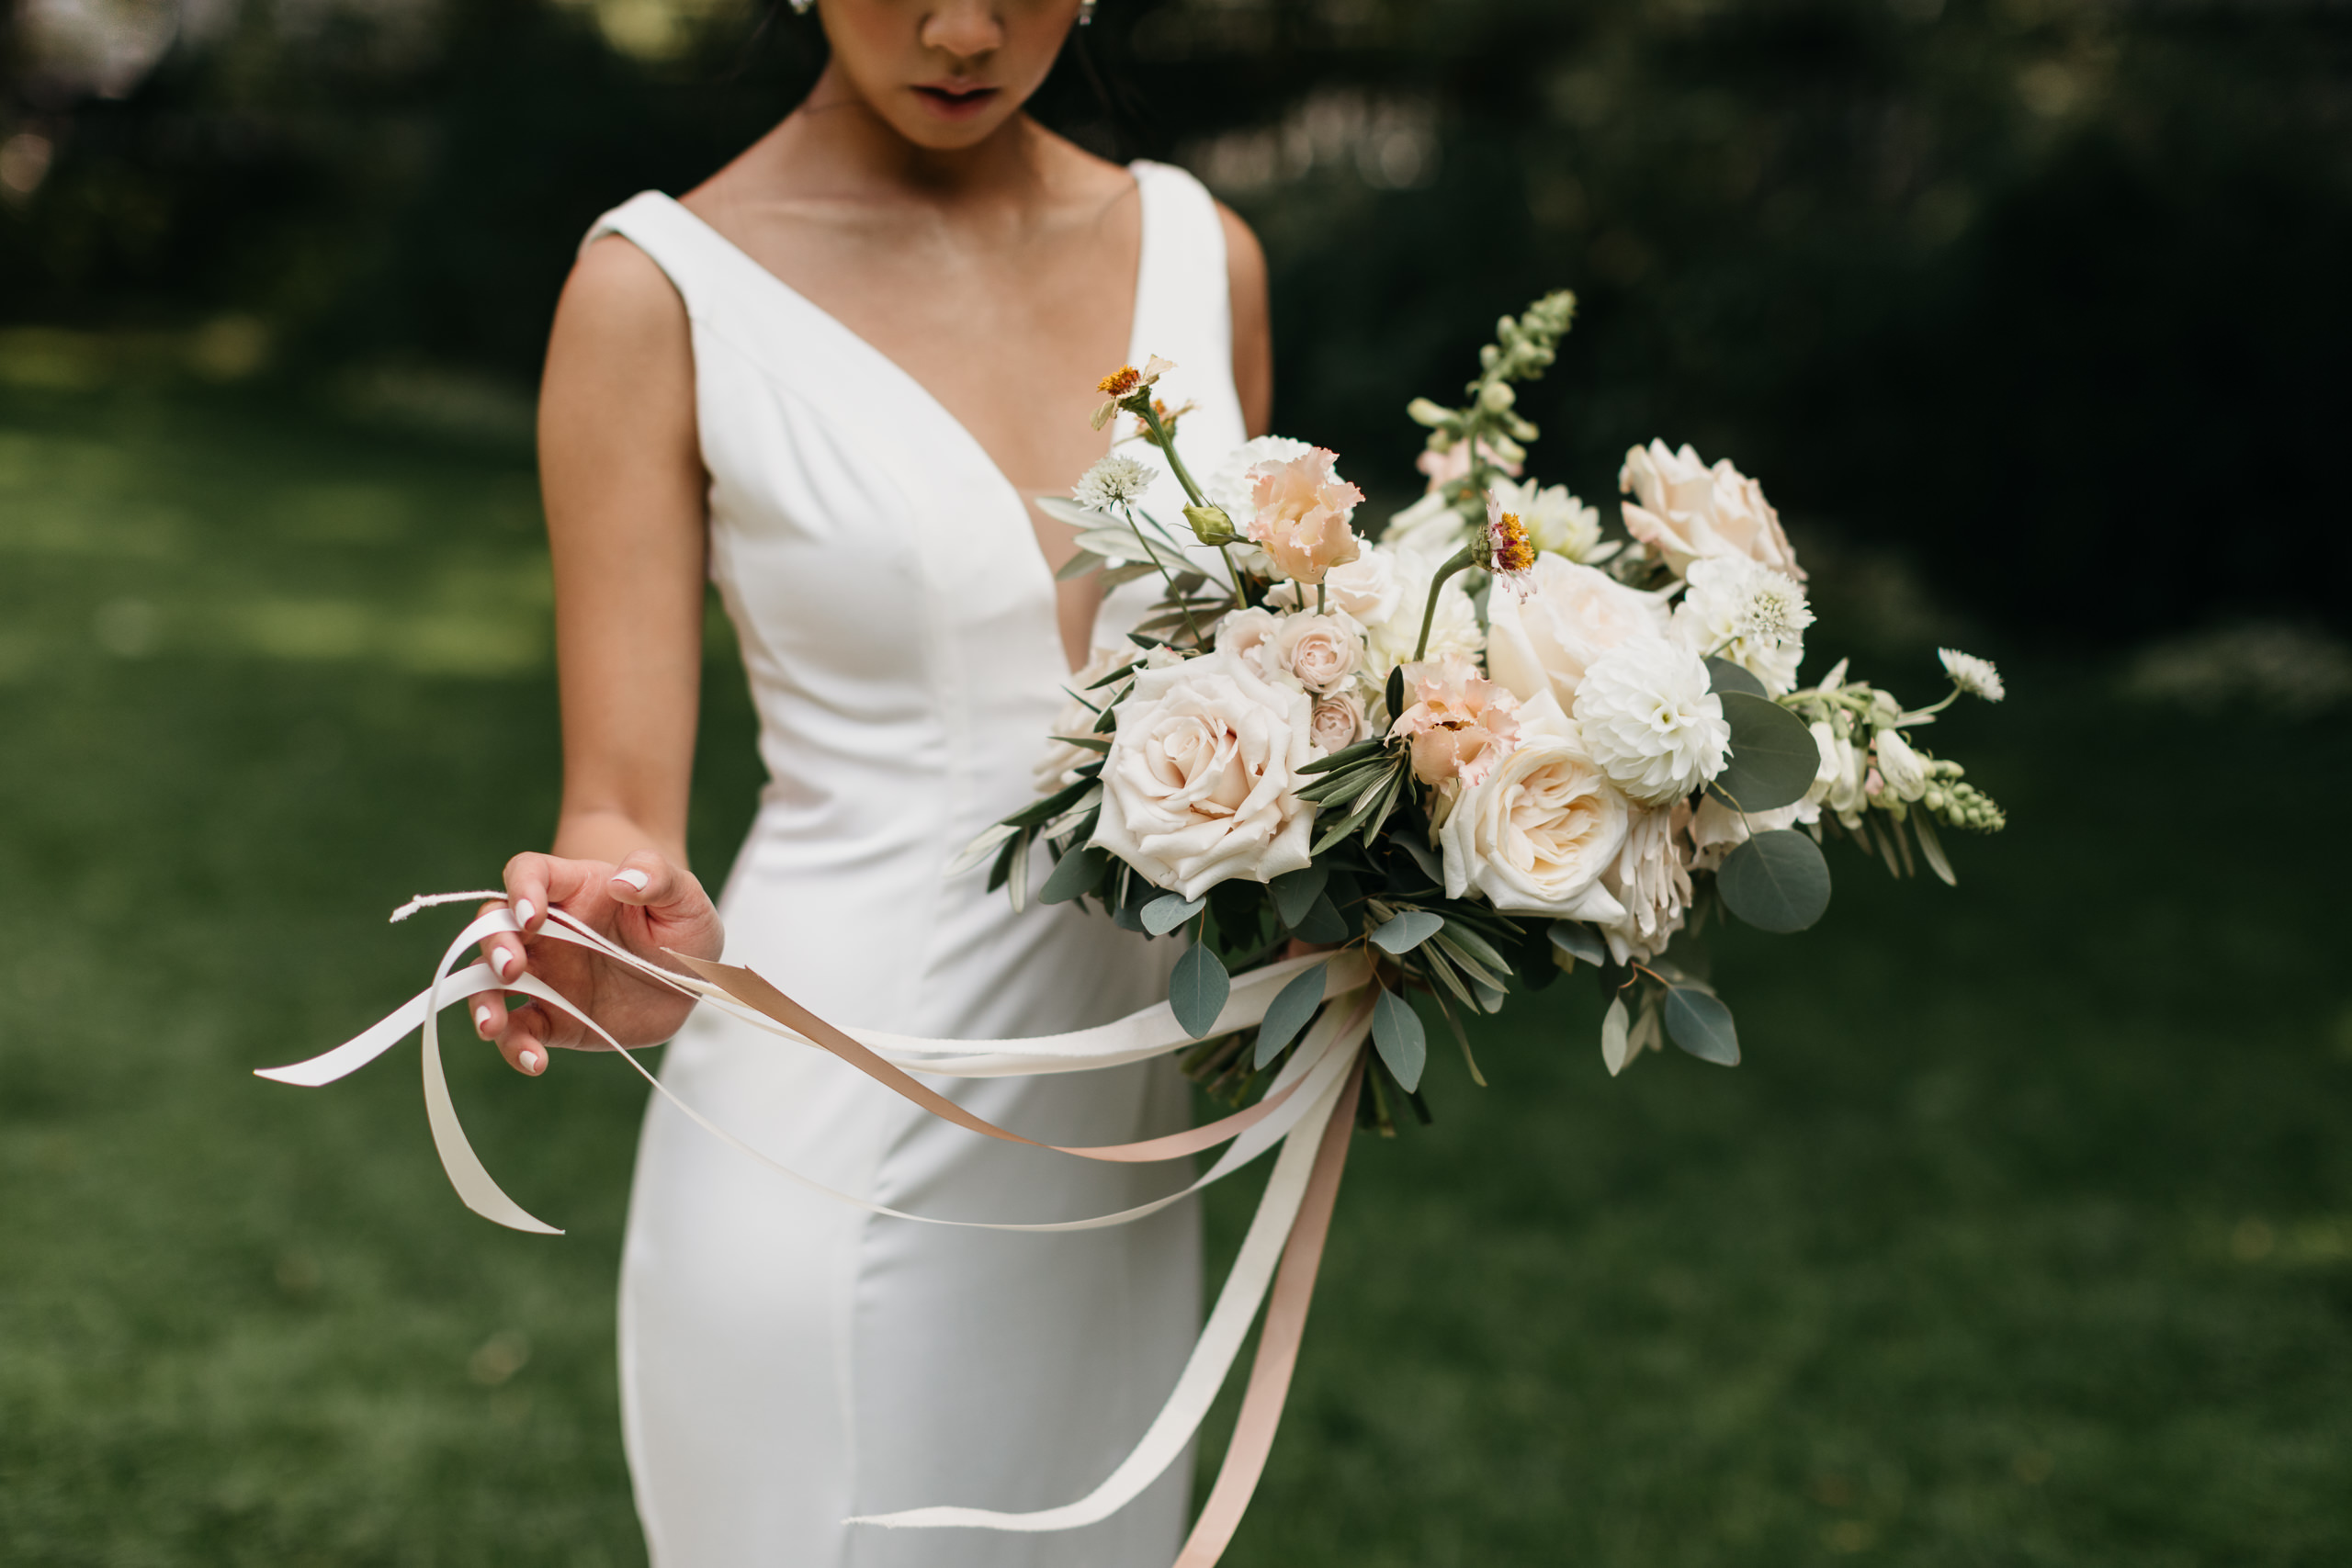 Bride with white and peach bouquet with ribbons by Coriander Girl at osgoode hall toronto wedding eightyfifth street photography